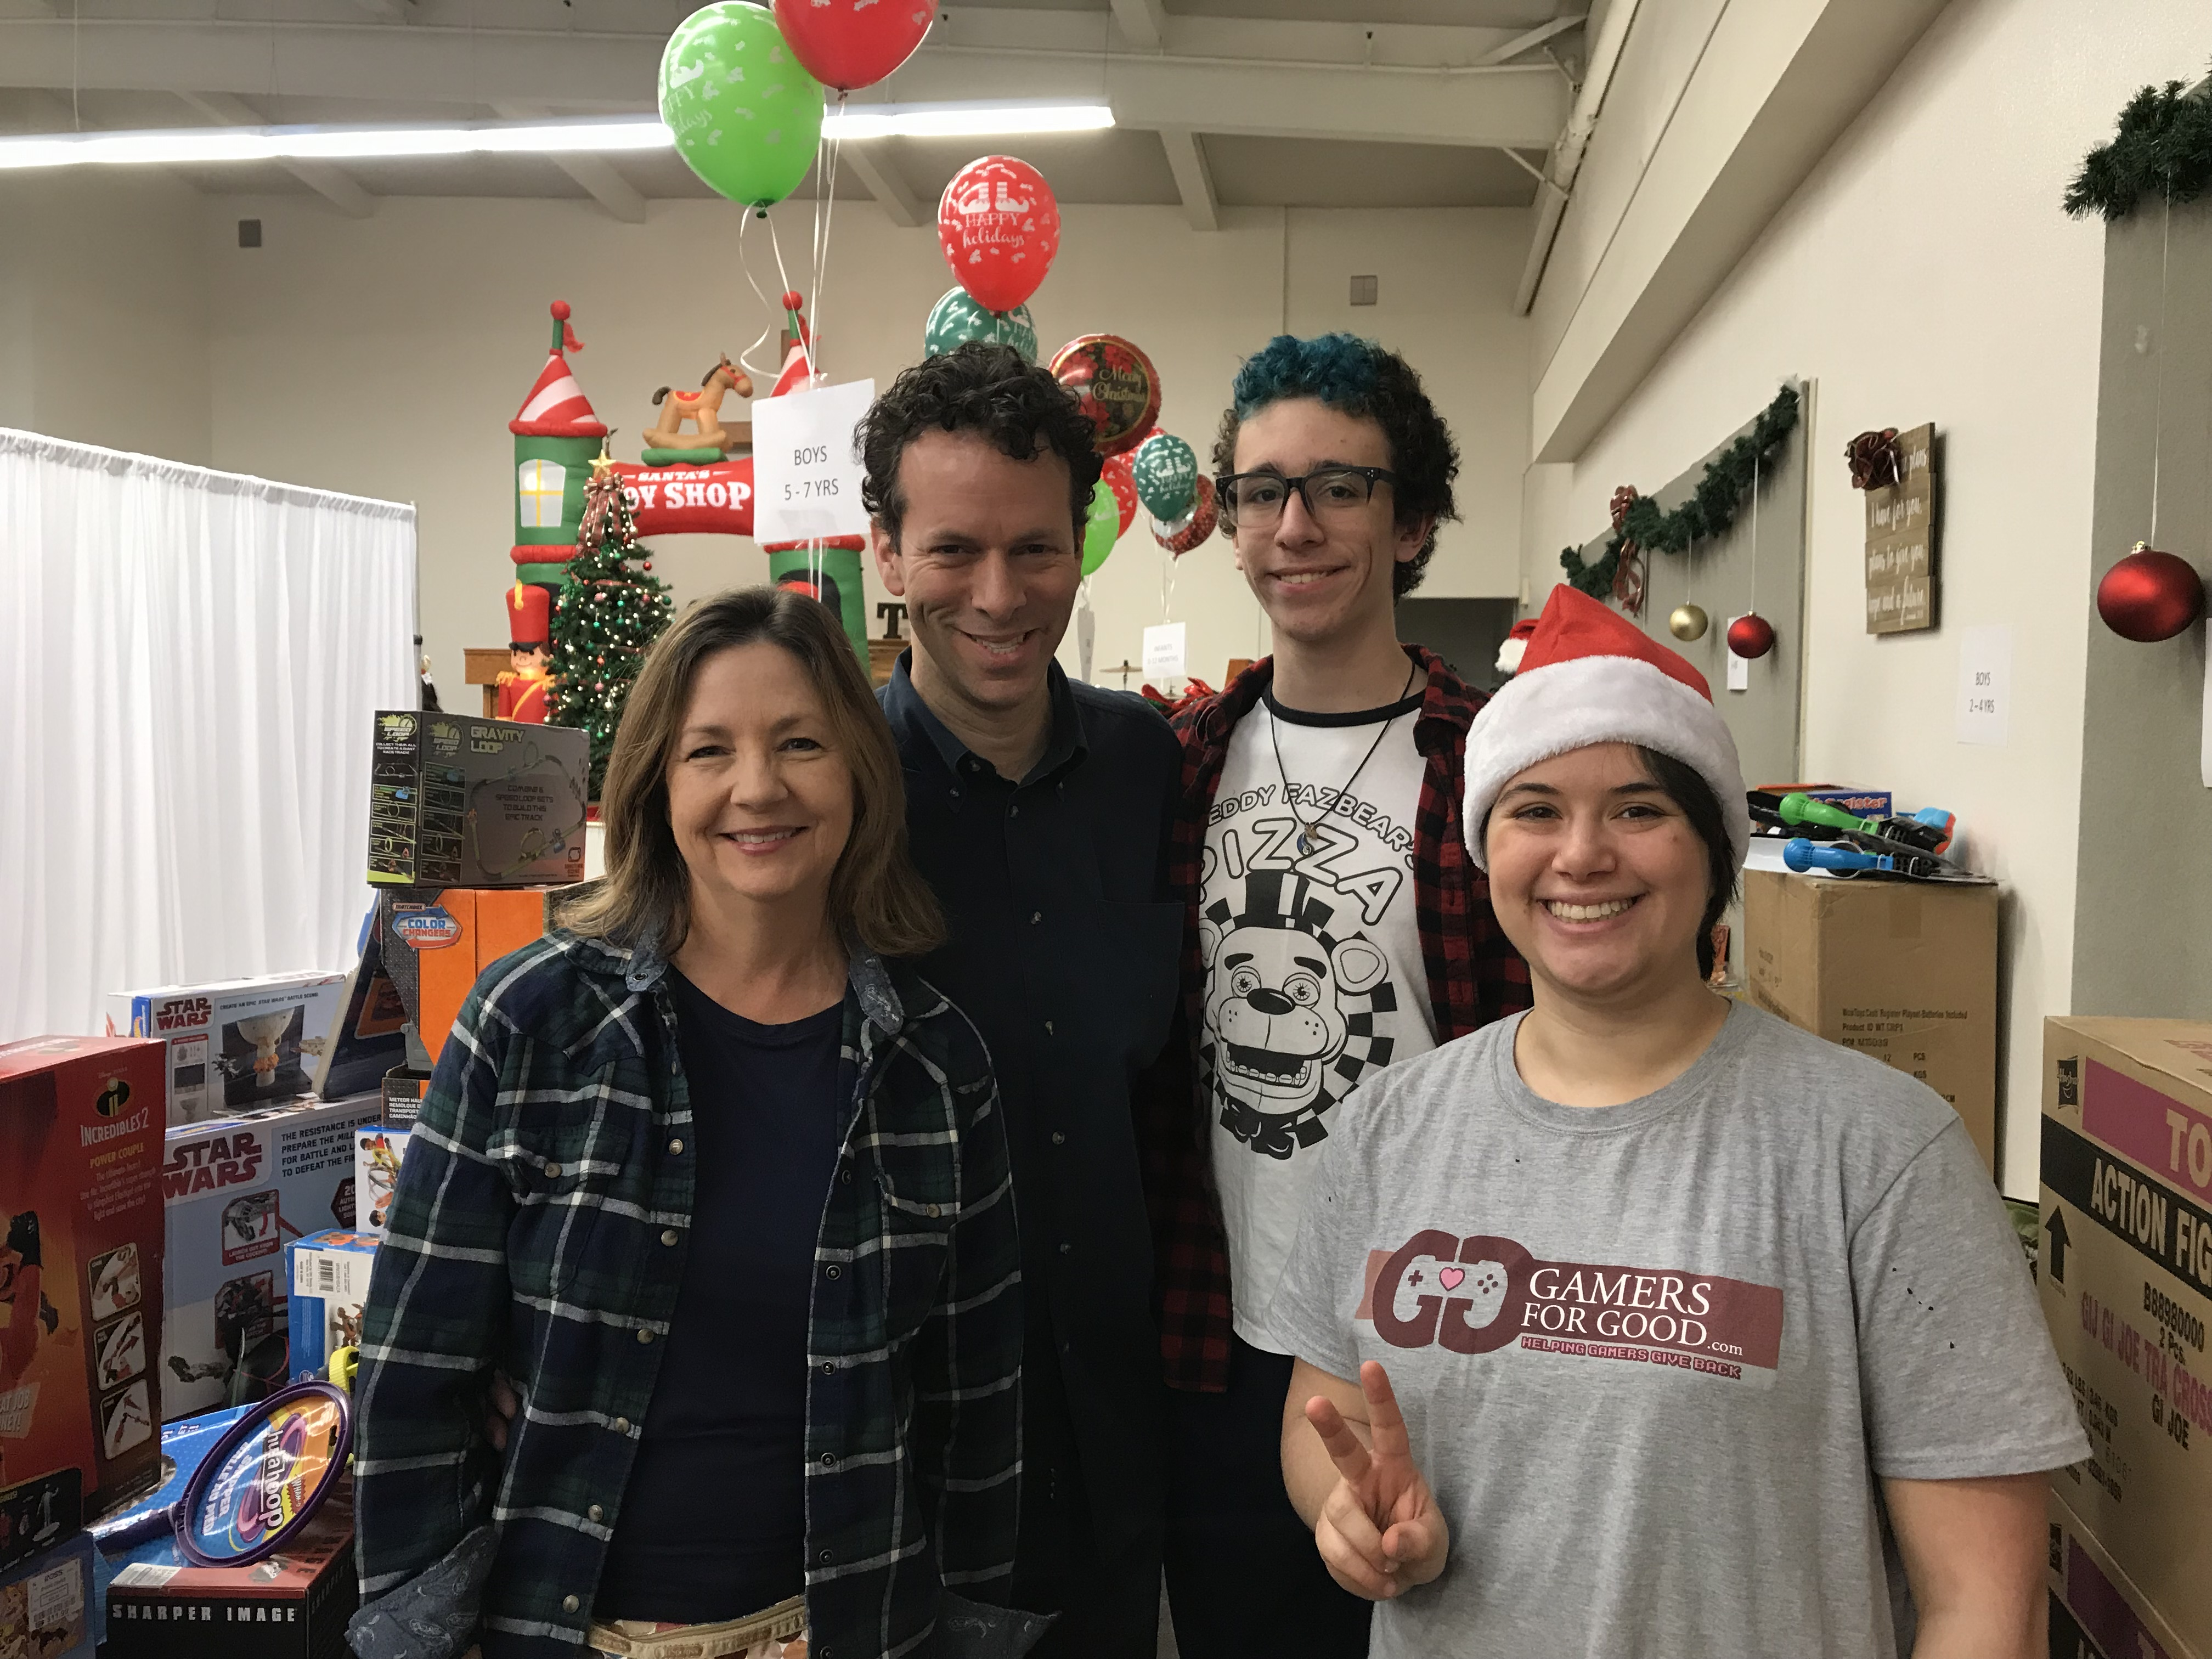 South Central LA families were aided by gamers across SoCal this holiday season